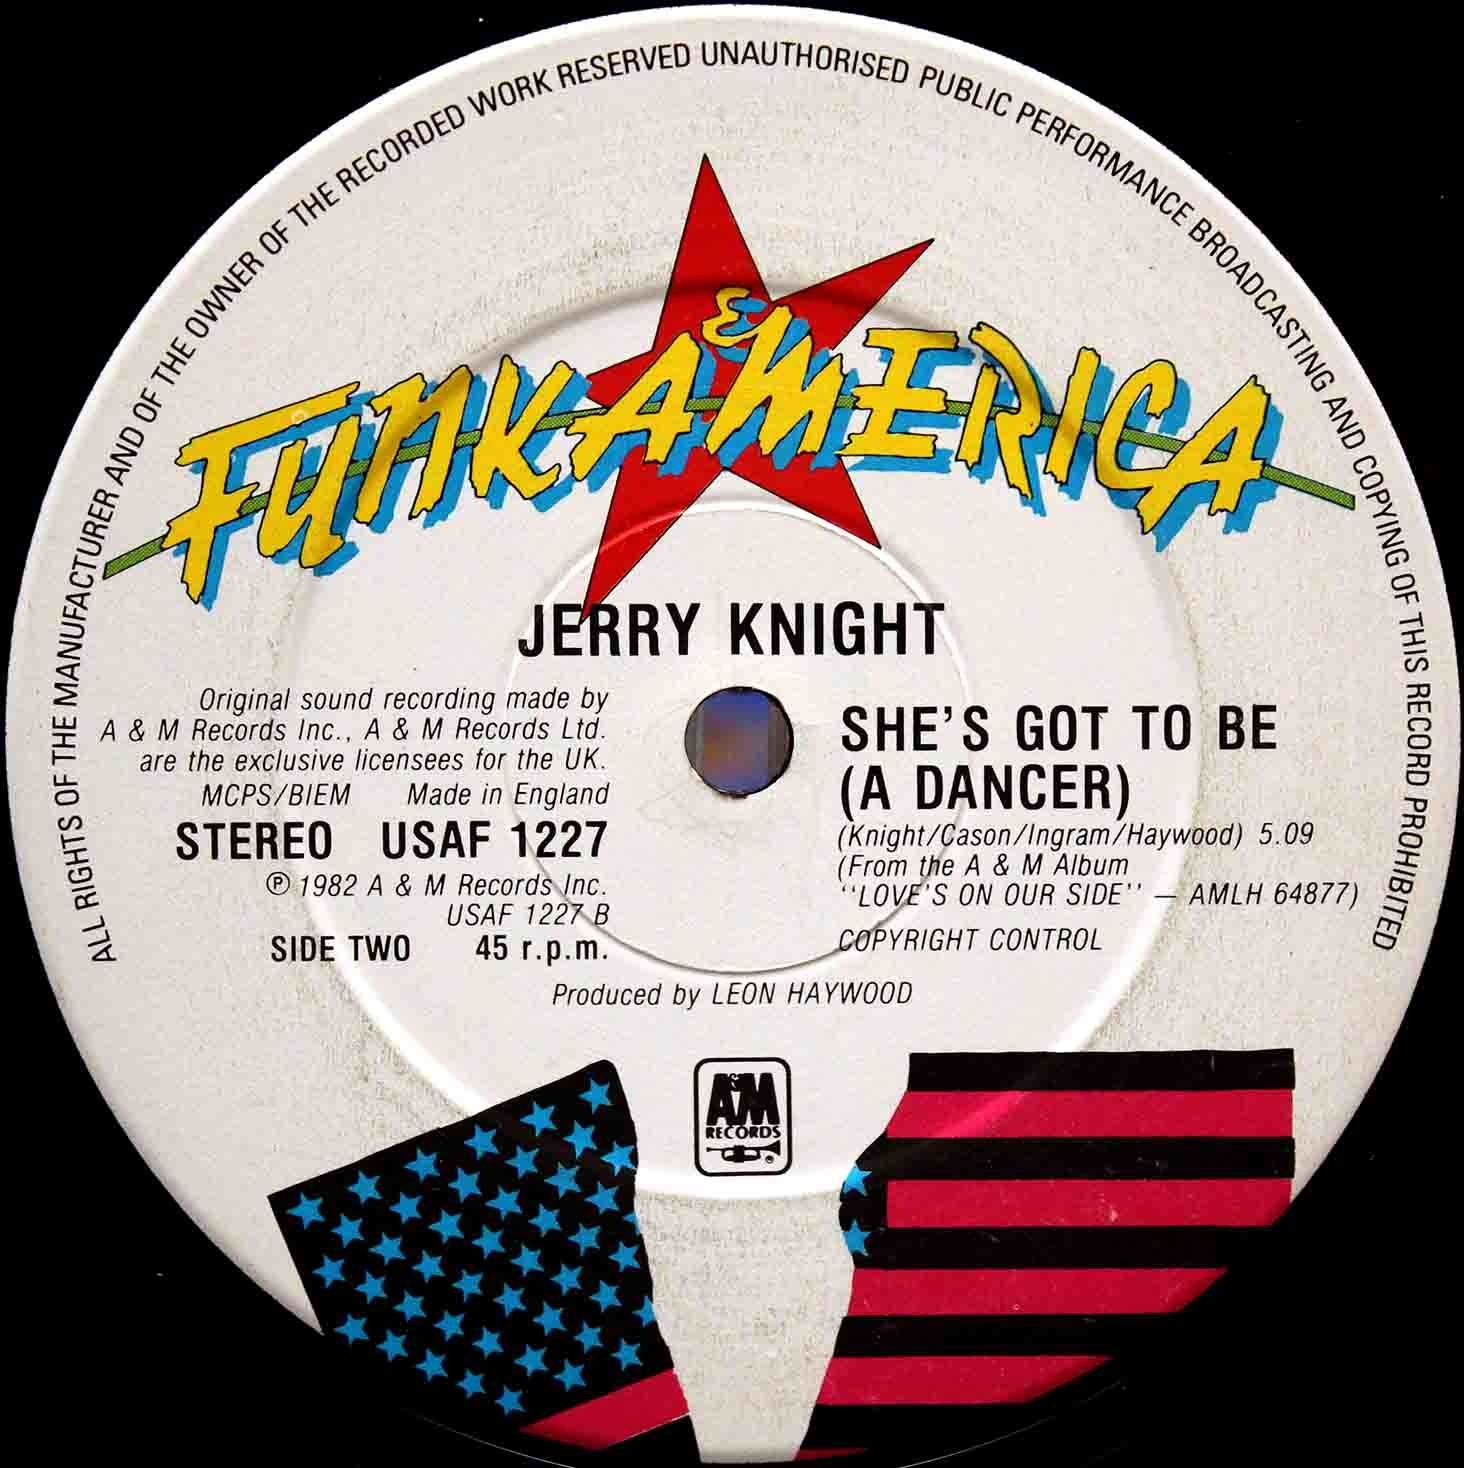 Jerry Knight Shes Got To Be (A Dancer) 03